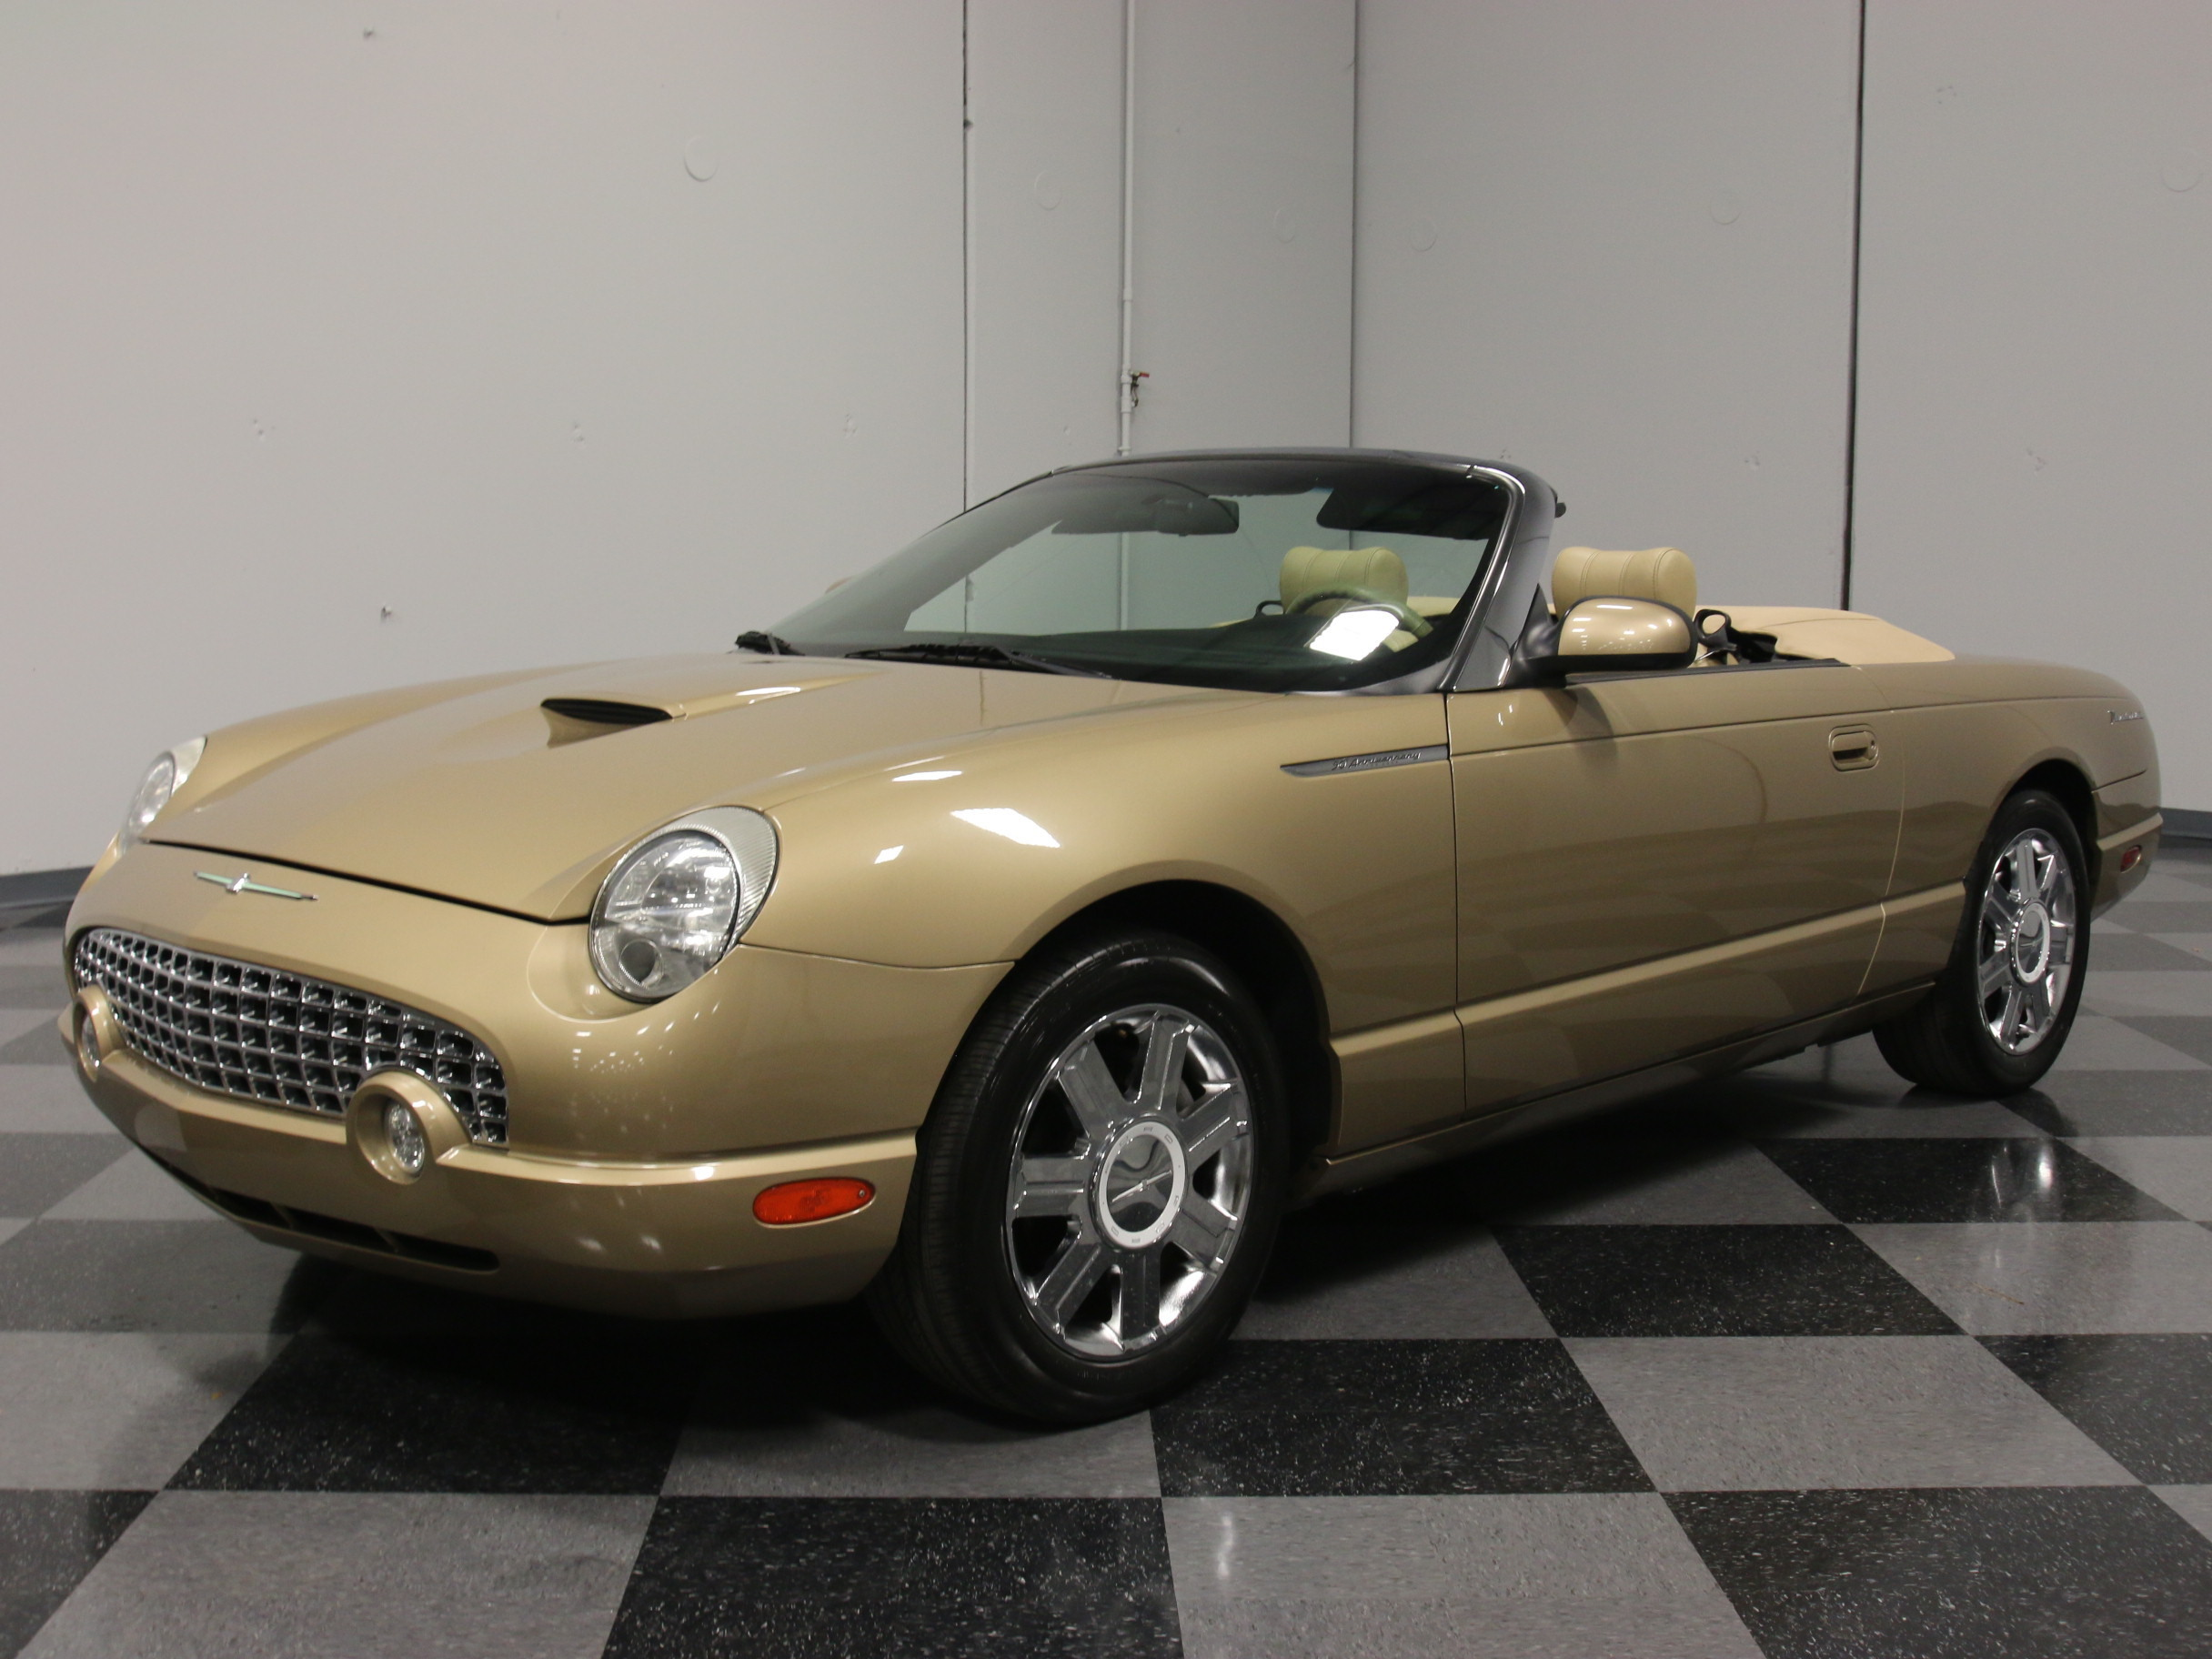 2005 ford thunderbird streetside classics the nation 39 s trusted classic car consignment dealer. Black Bedroom Furniture Sets. Home Design Ideas